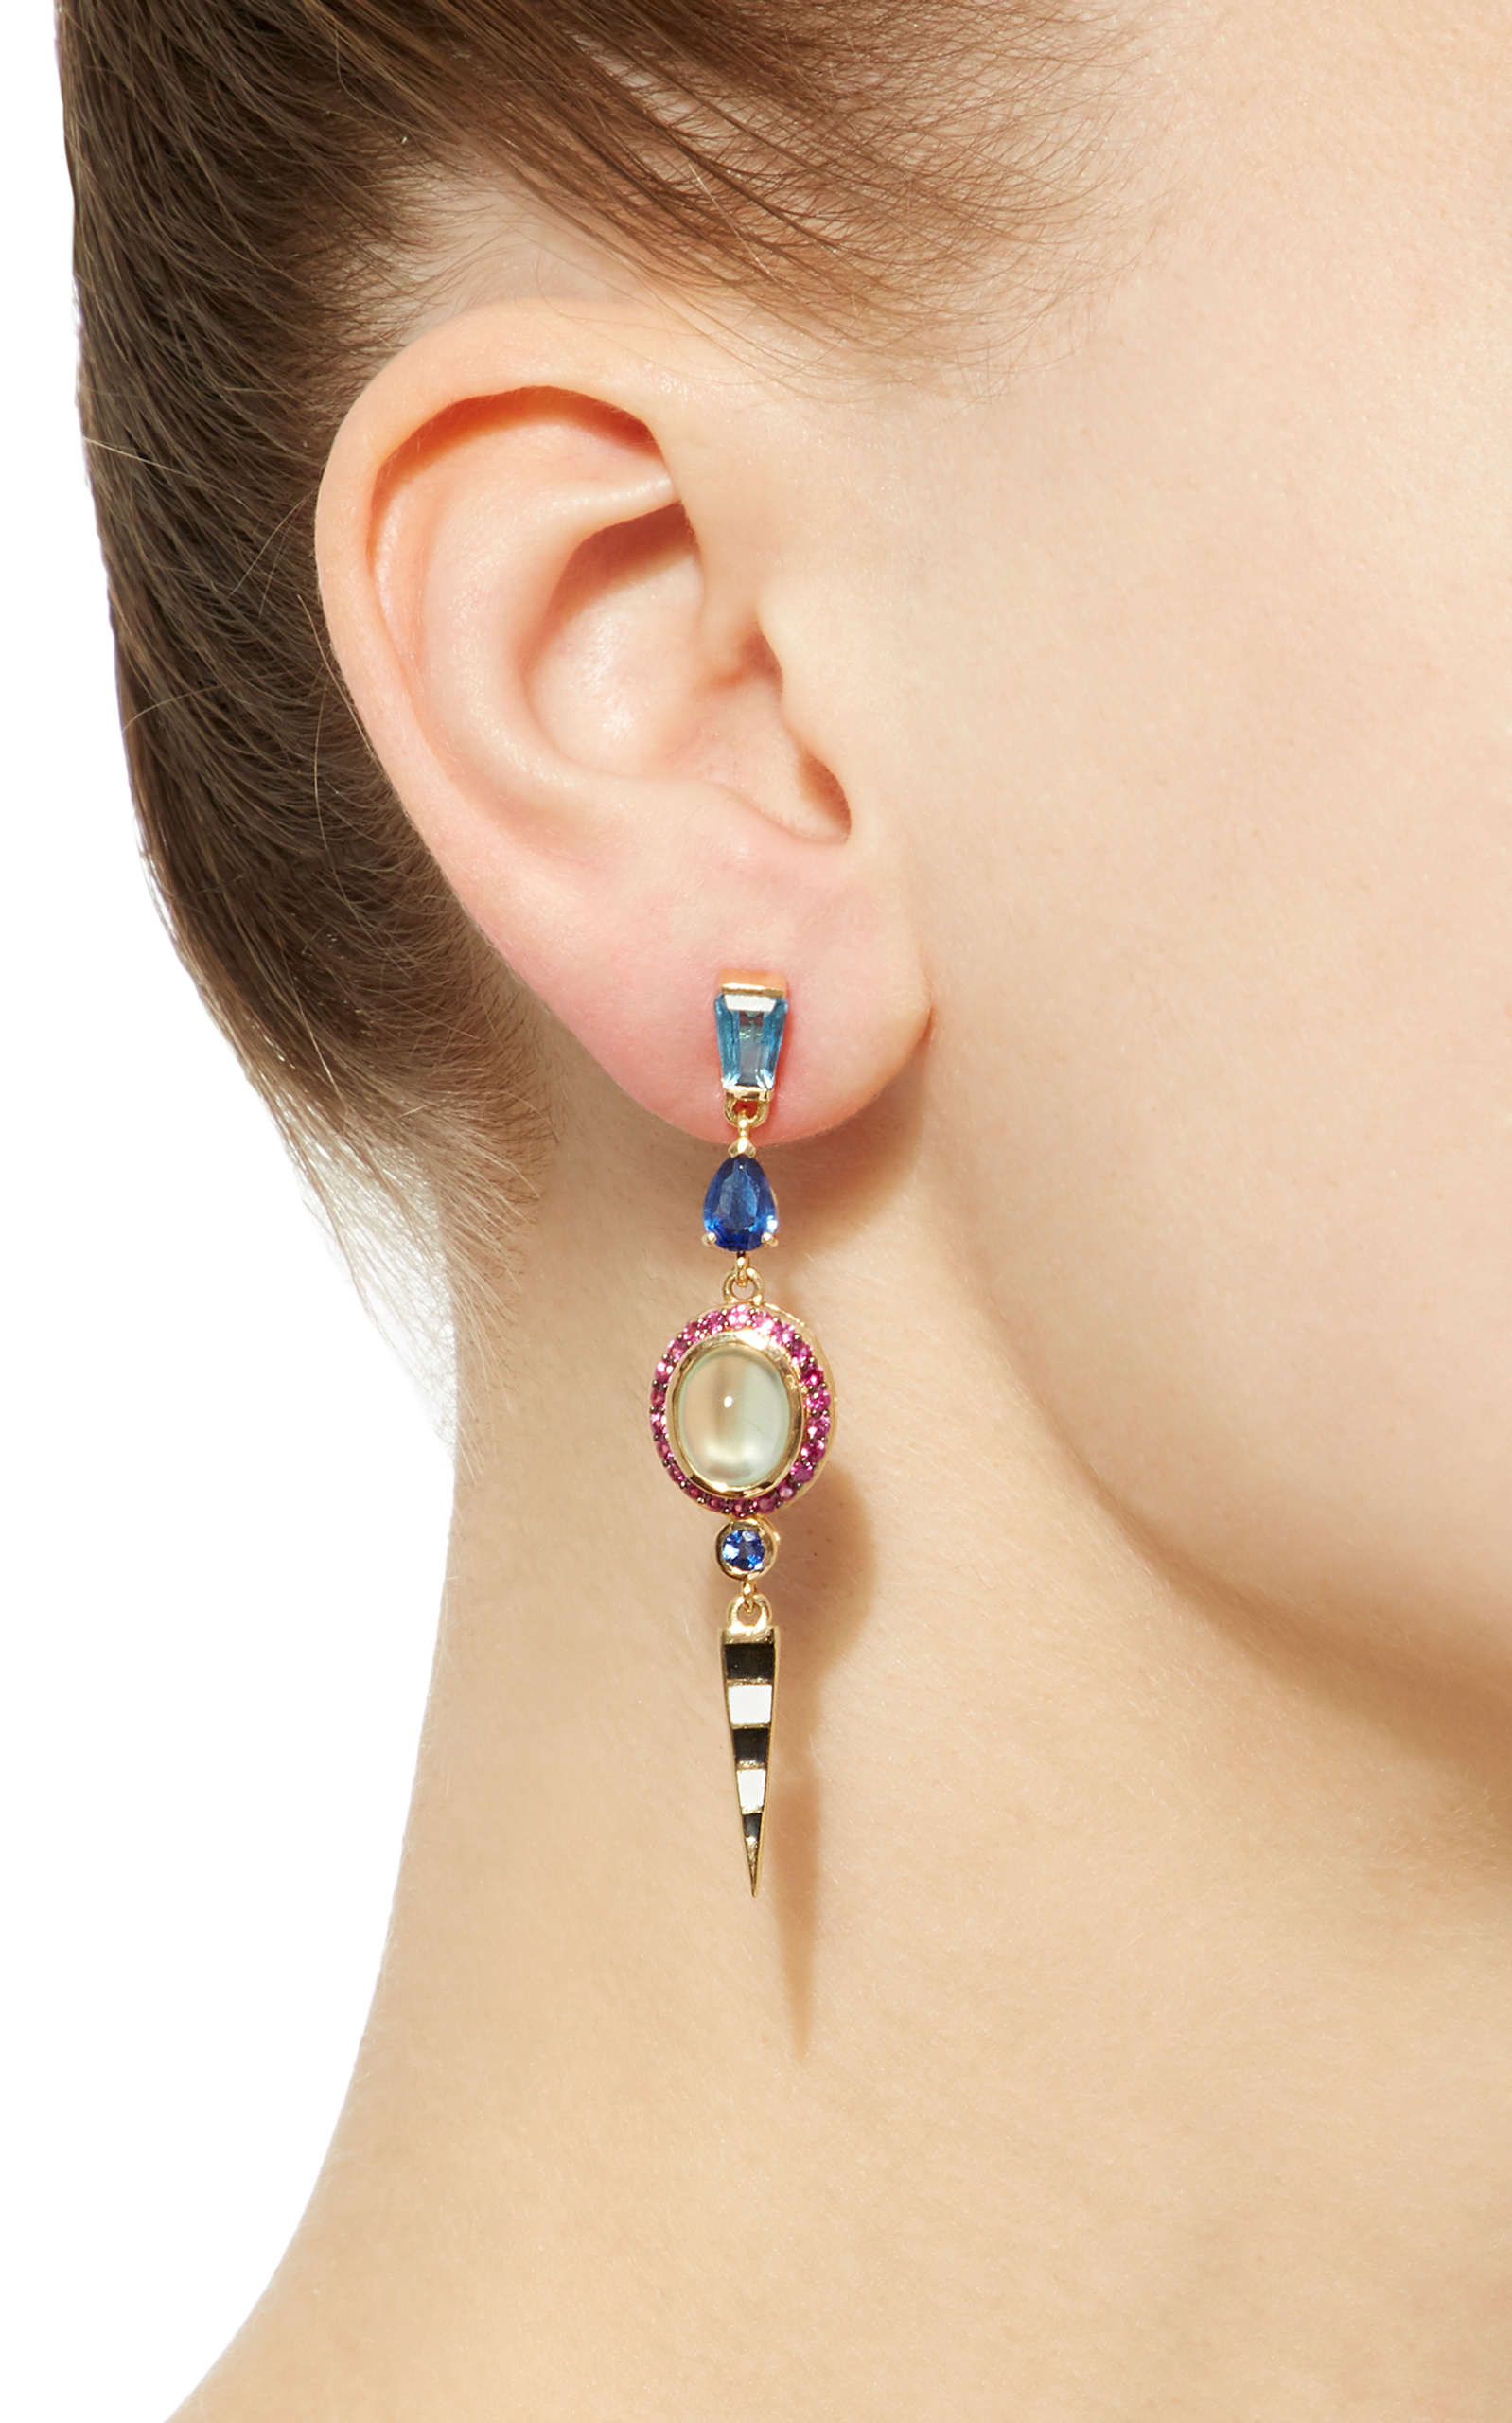 earring earrings open enlarged the single drop jewelry products dior christian